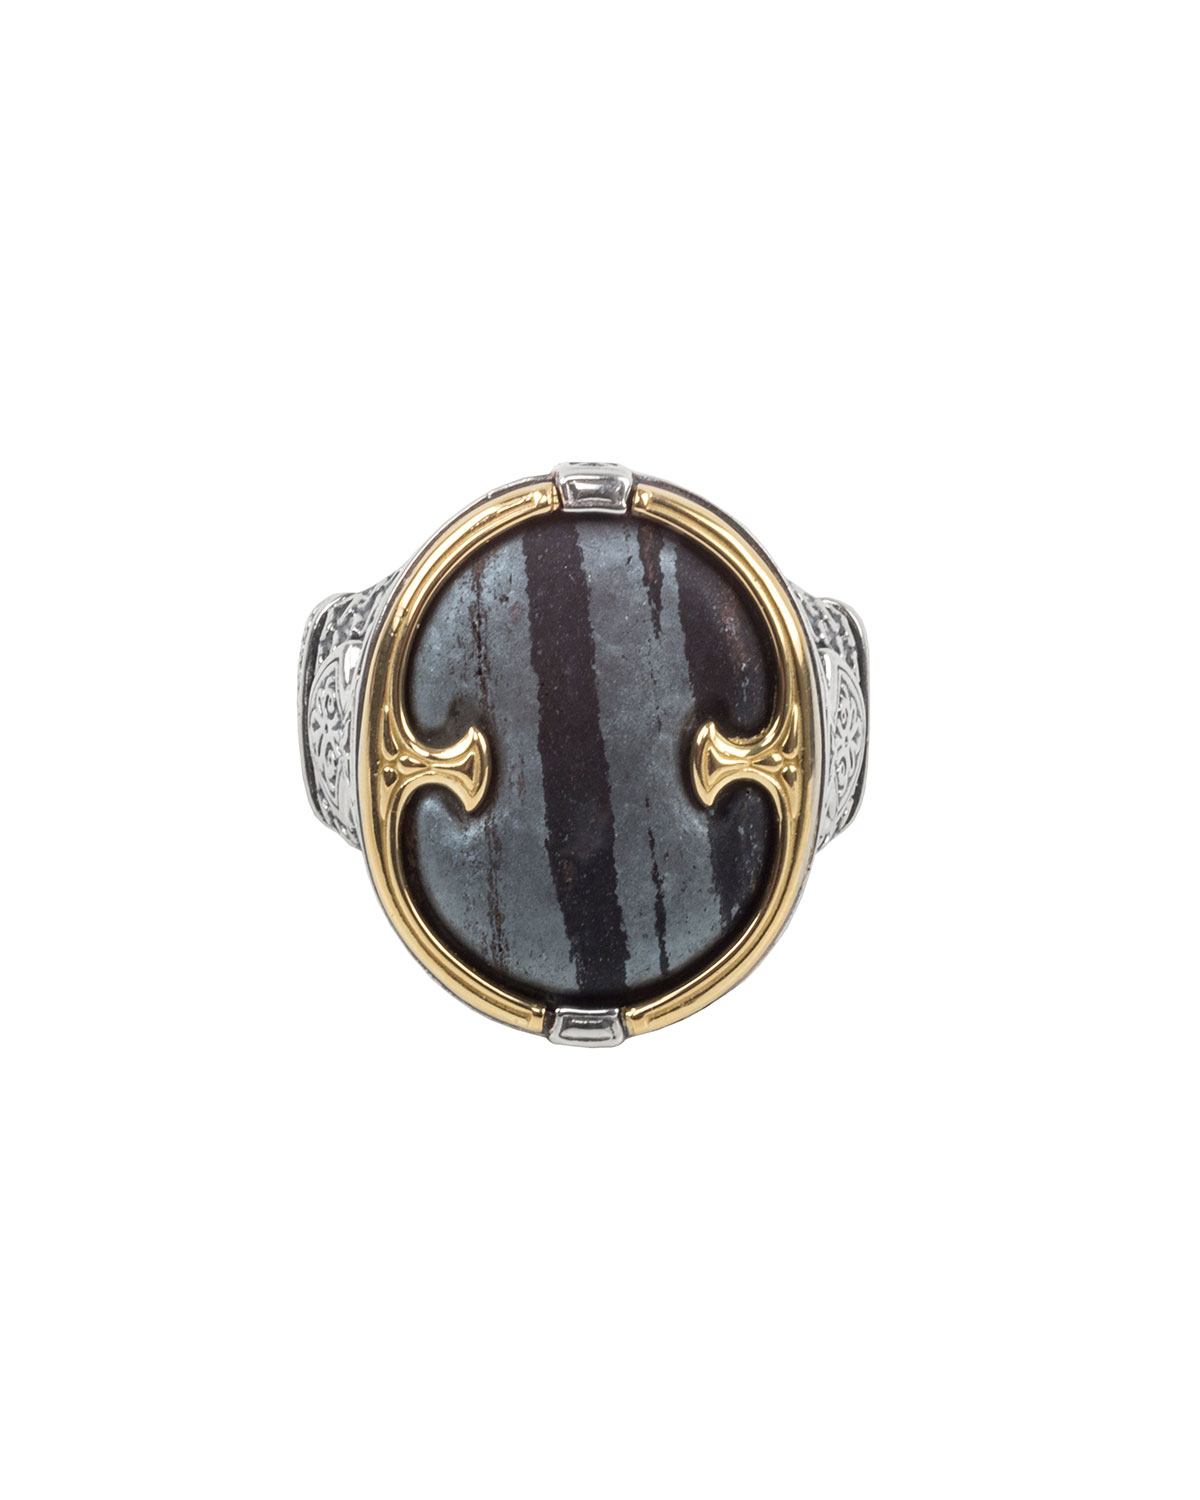 Konstantino 18K Gold/Silver Ferrite Ring, Size 10